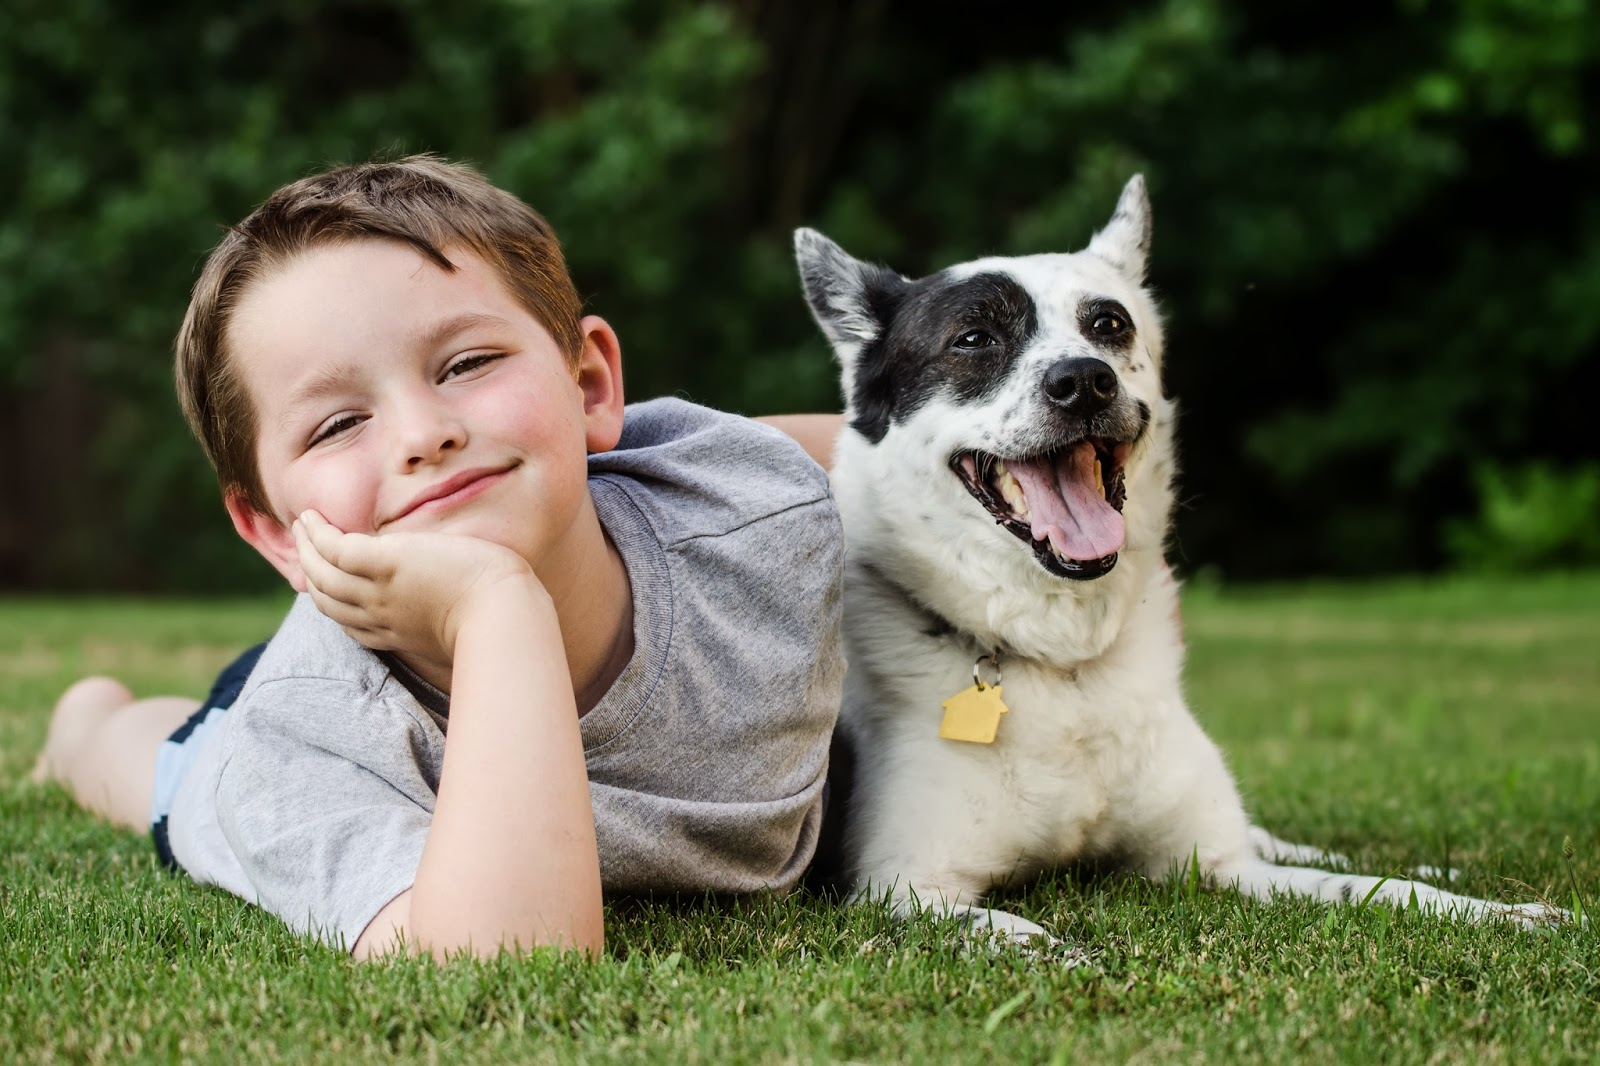 a young boy having fun with his black and white dog